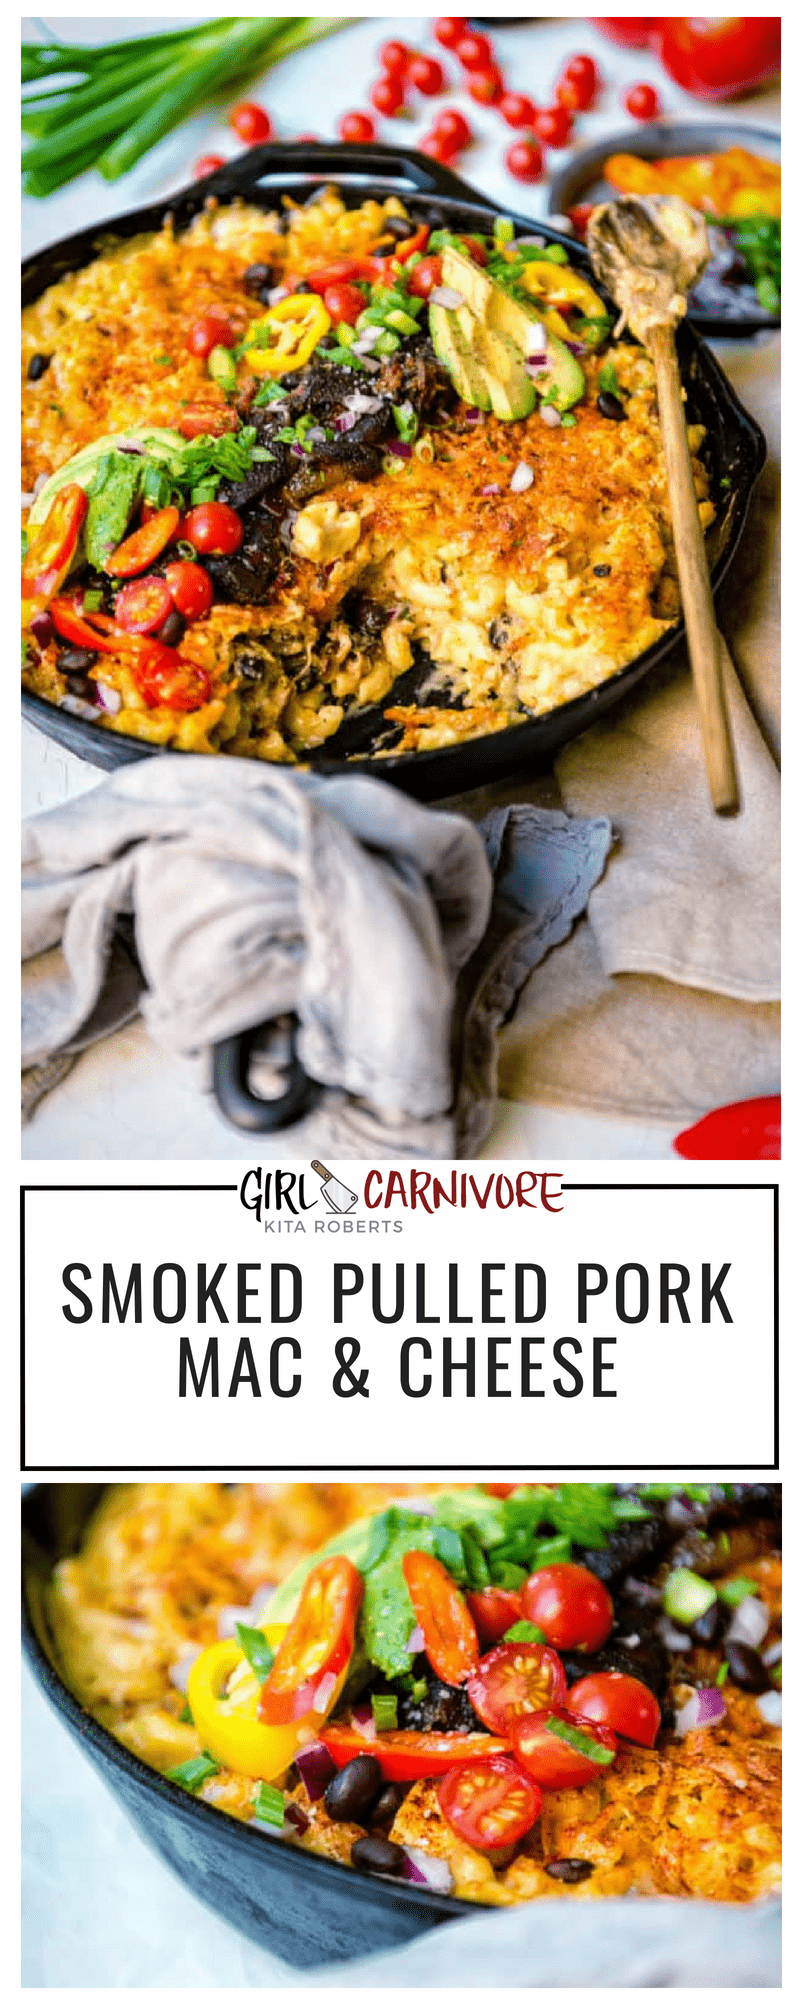 Shredded meat tossed in creamy mac and cheese and finished with that delicious smoke flavor? This Smoked Pulled Pork Mac and Cheese recipe is a must!